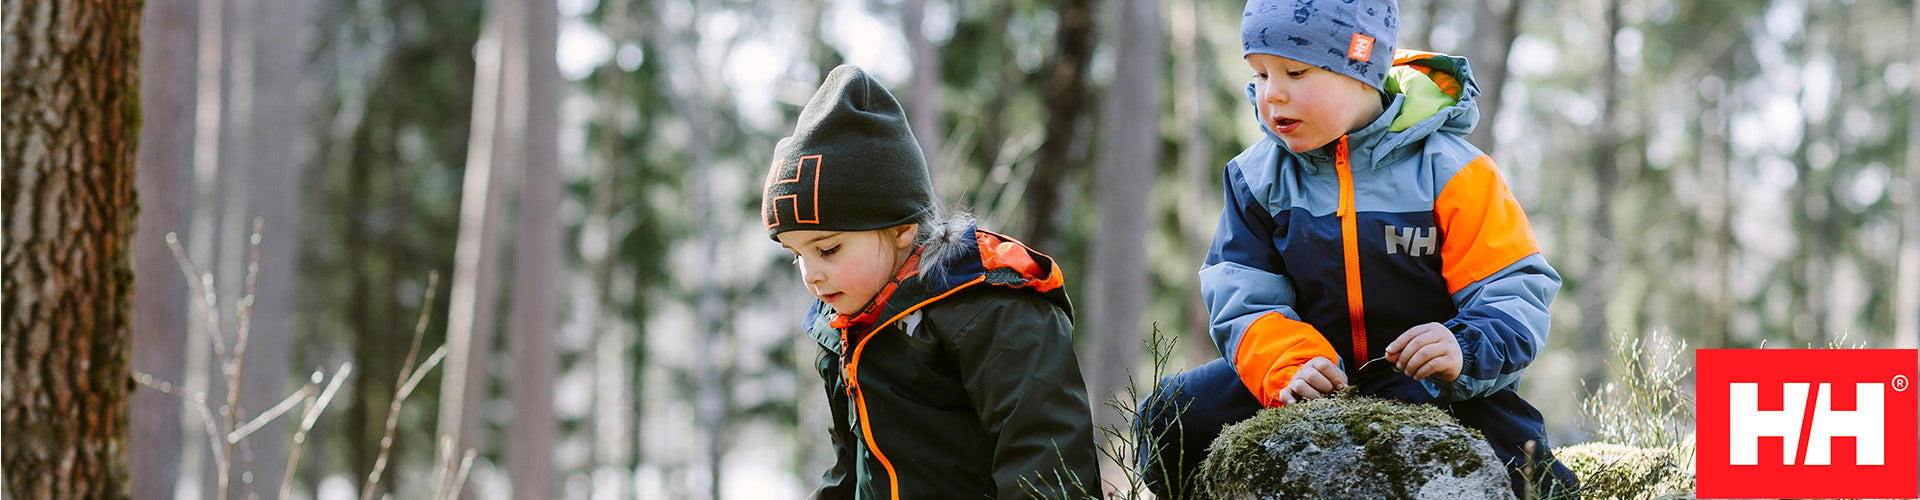 Helly Hansen Kids' Sailing, Skiing and Outdoor Clothing